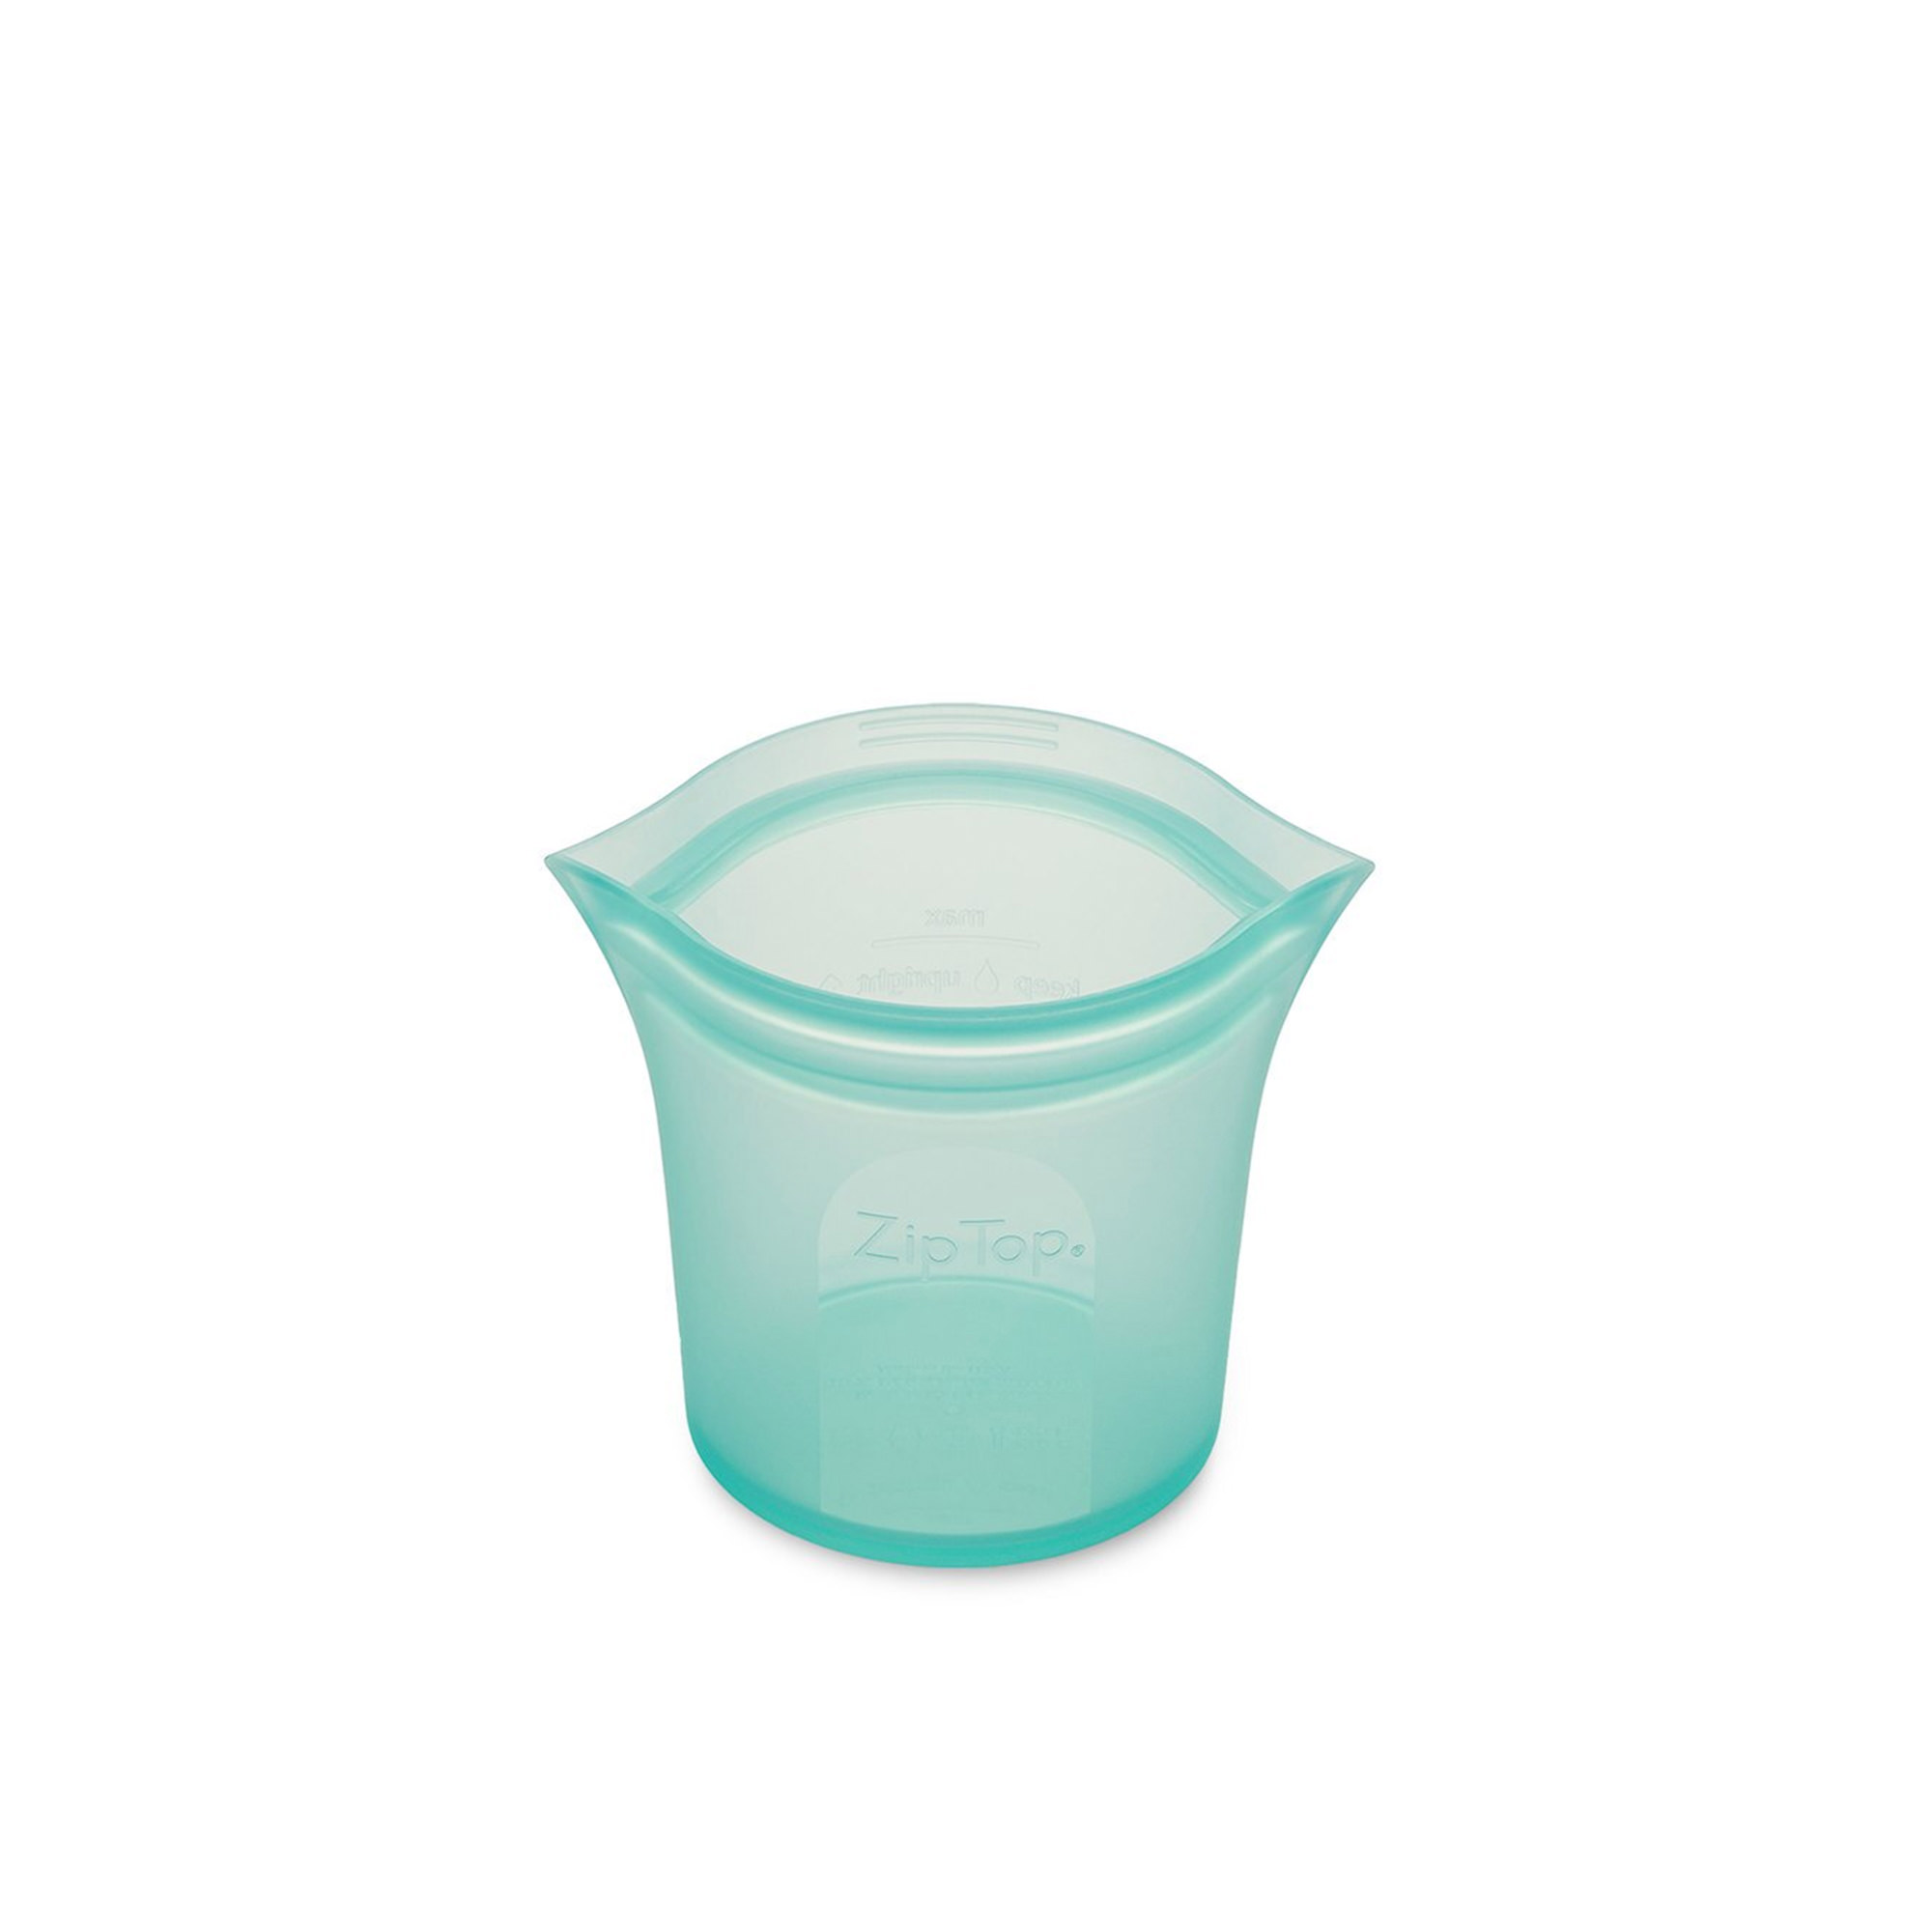 Zip Top Platinum Silicone Short Cup Container 266ml Teal